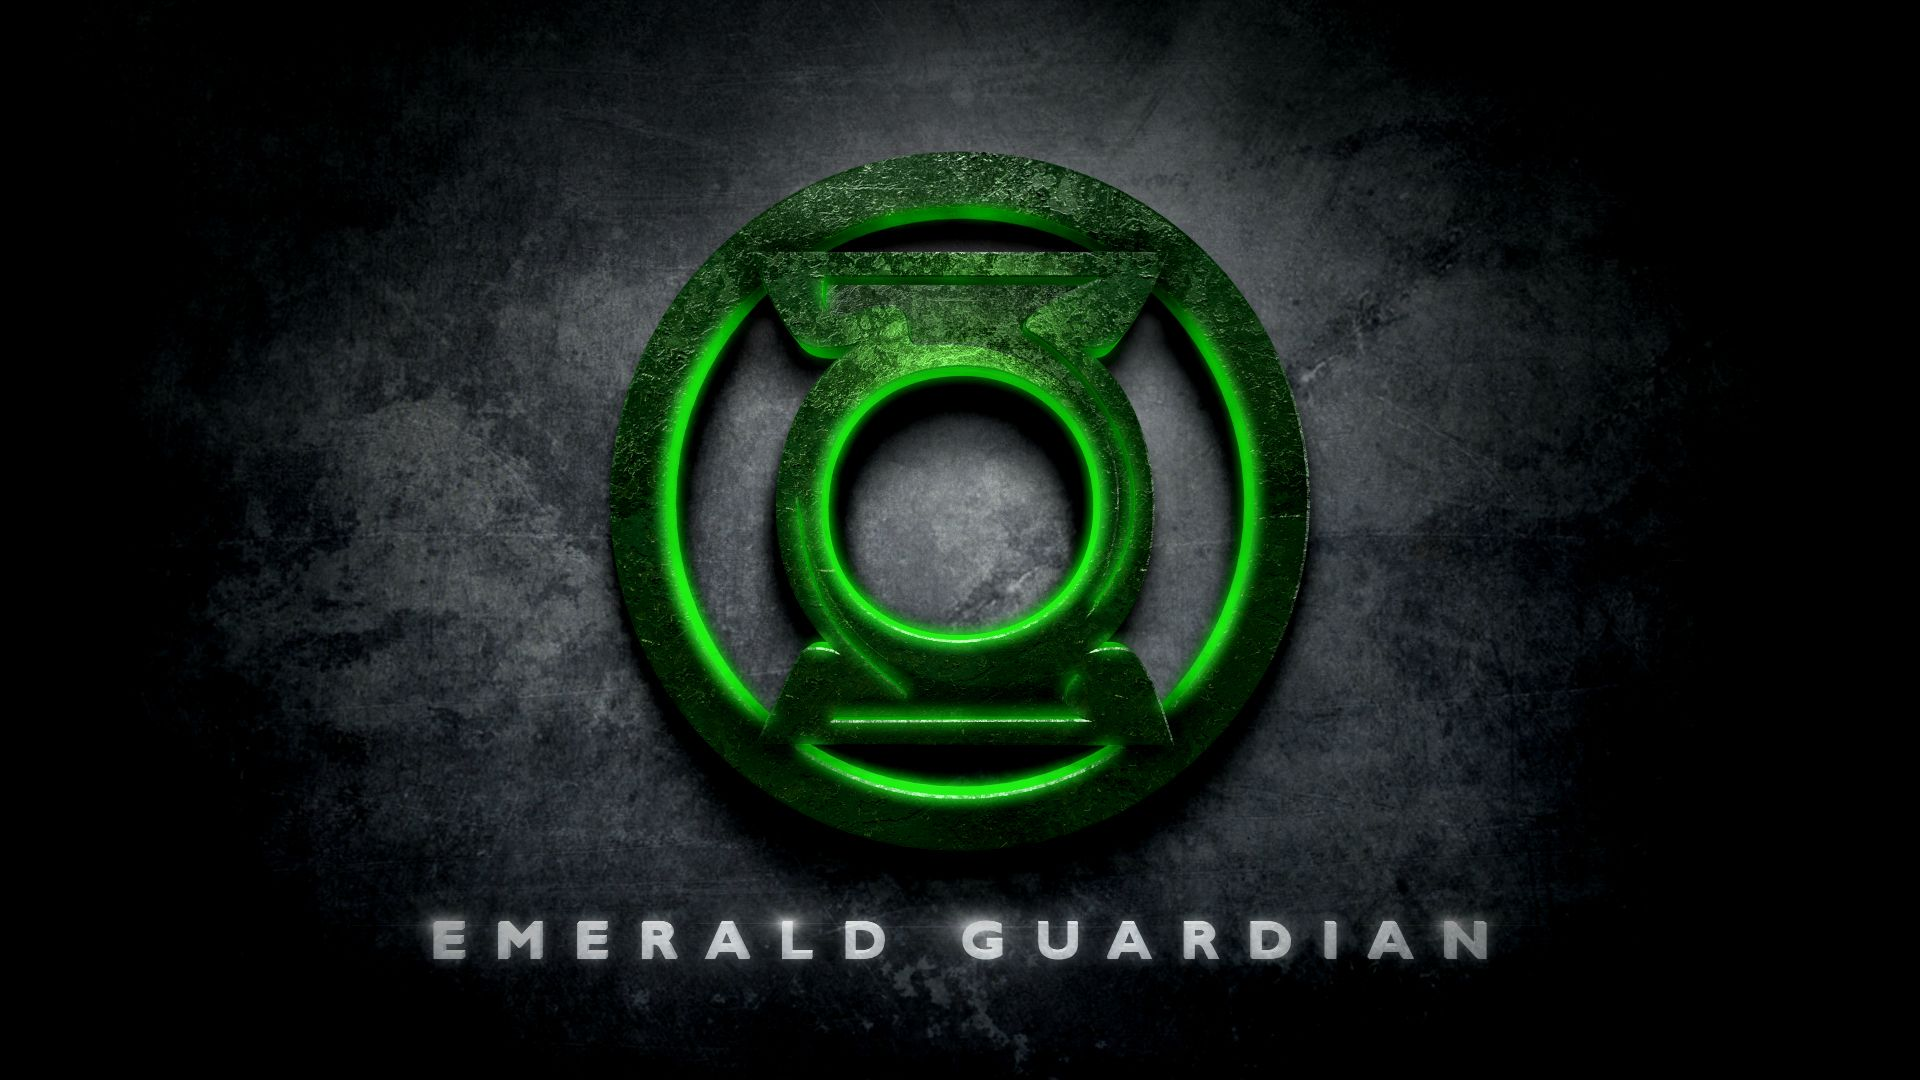 Green Lantern Emerald Guardian Logo in the Style of Man of Steel 1920x1080